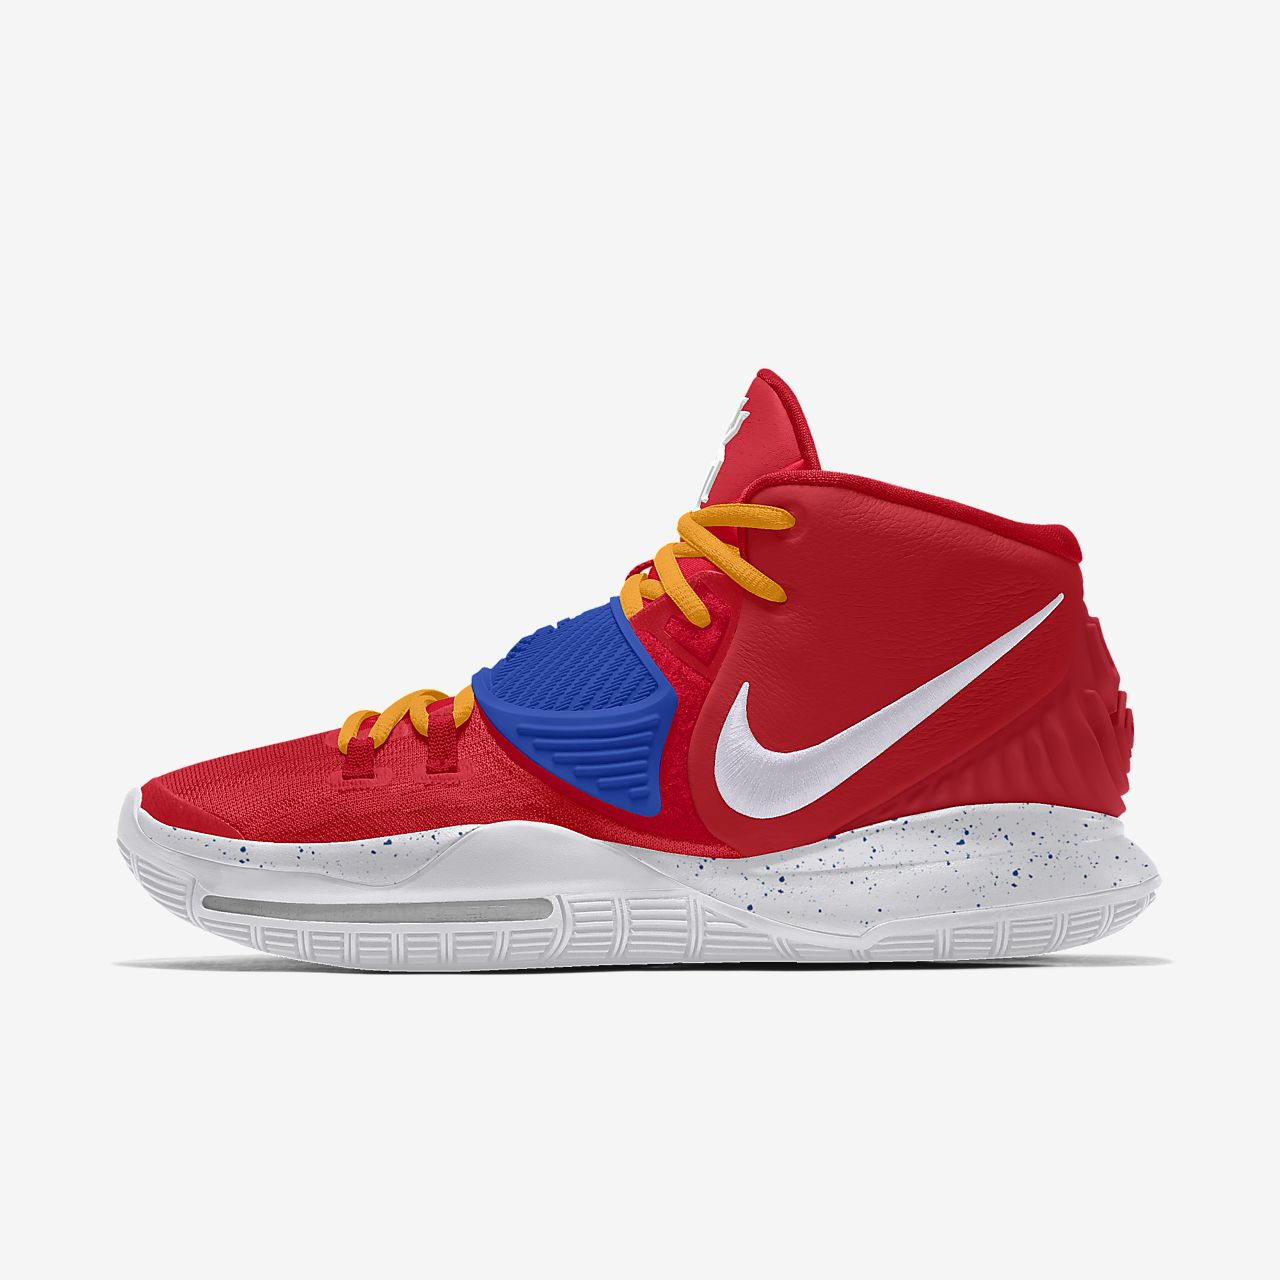 Chaussure de basketball personnalisable Kyrie 6 By You